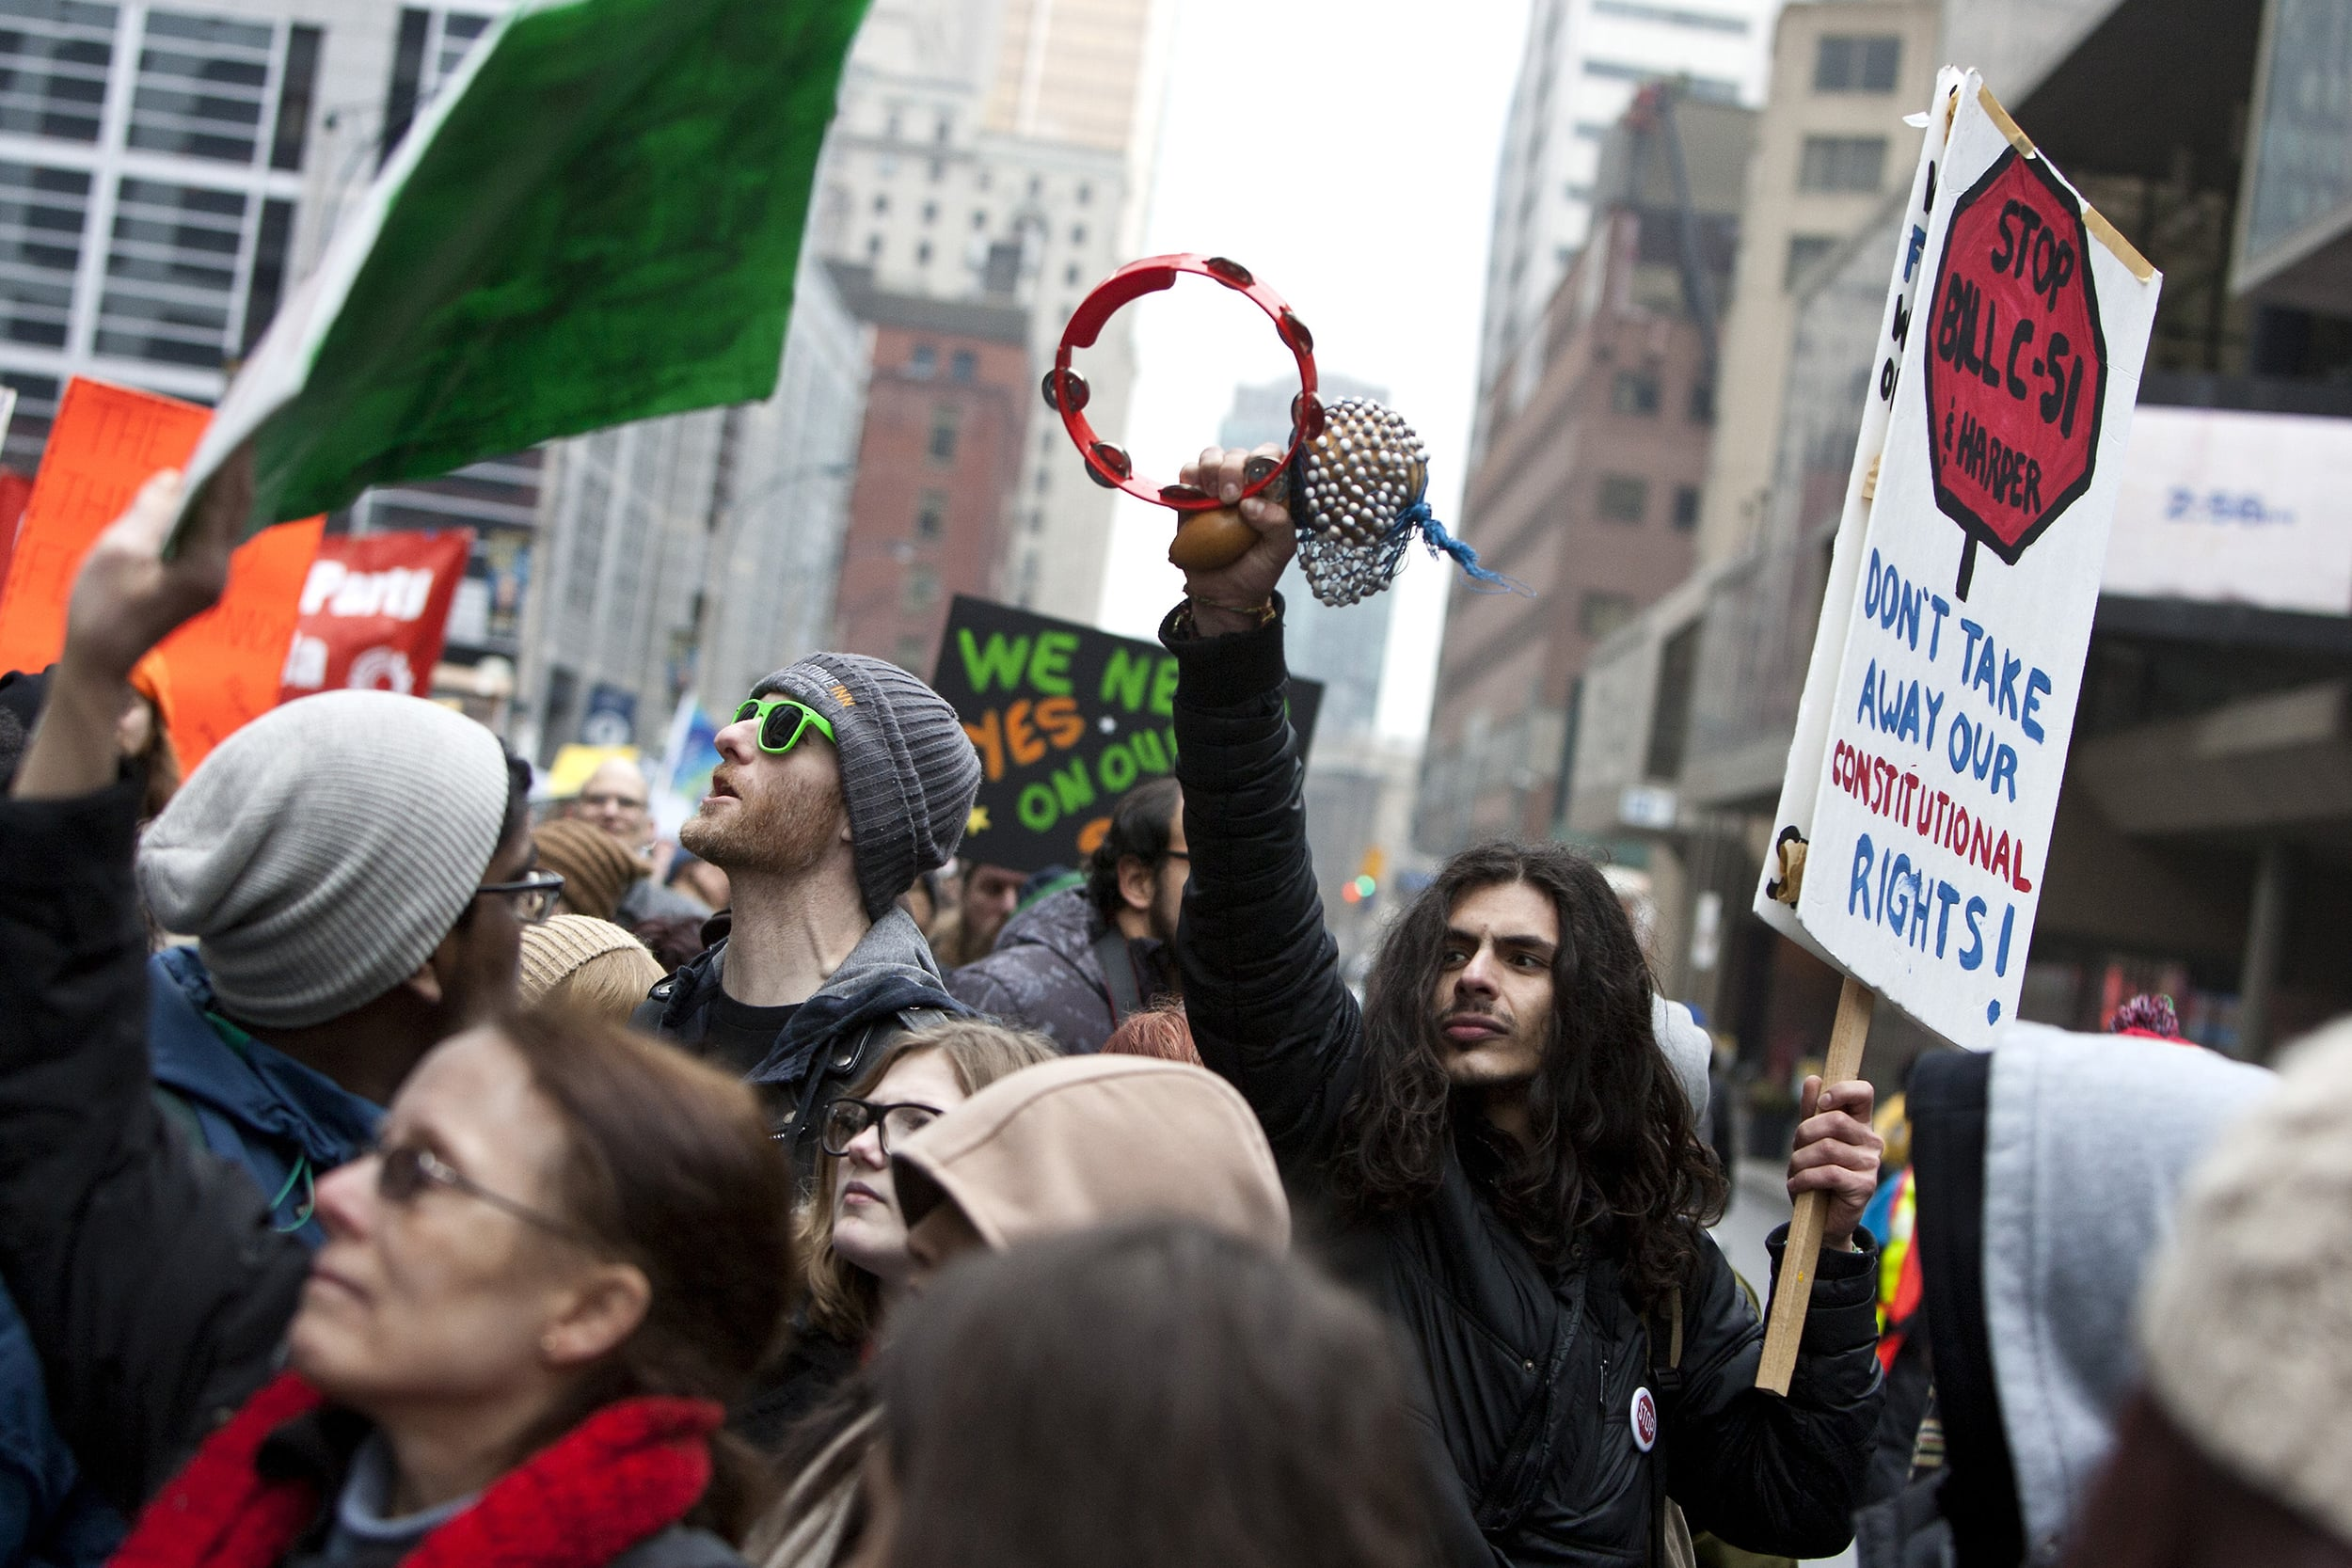 Protestors in Toronto speak out against security bill C-51, March 14th 2015.